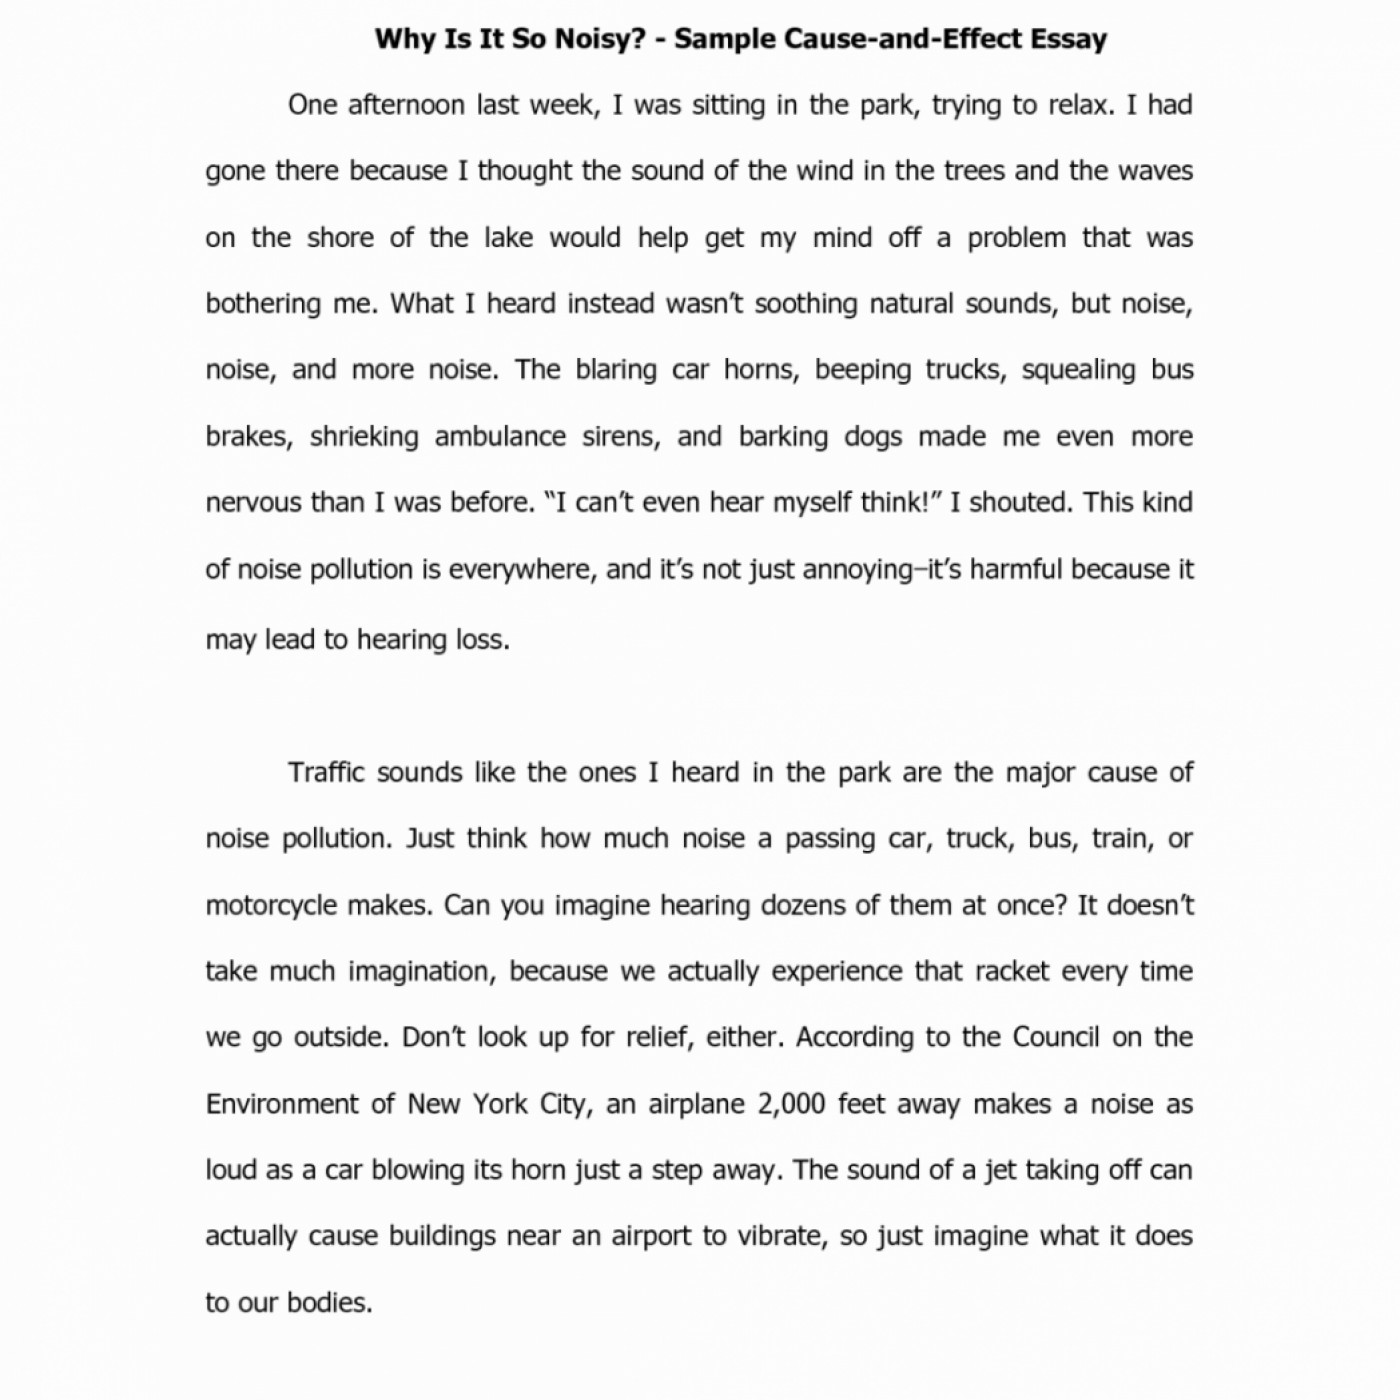 027 Cause And Effect Essays Format Best Of For Or Good Cover Bystander Domino Analysis Ielts Free 6th Grade College Pdf Middle School 1048x1048 Amazing Essay Examples Writing On Stress 1400